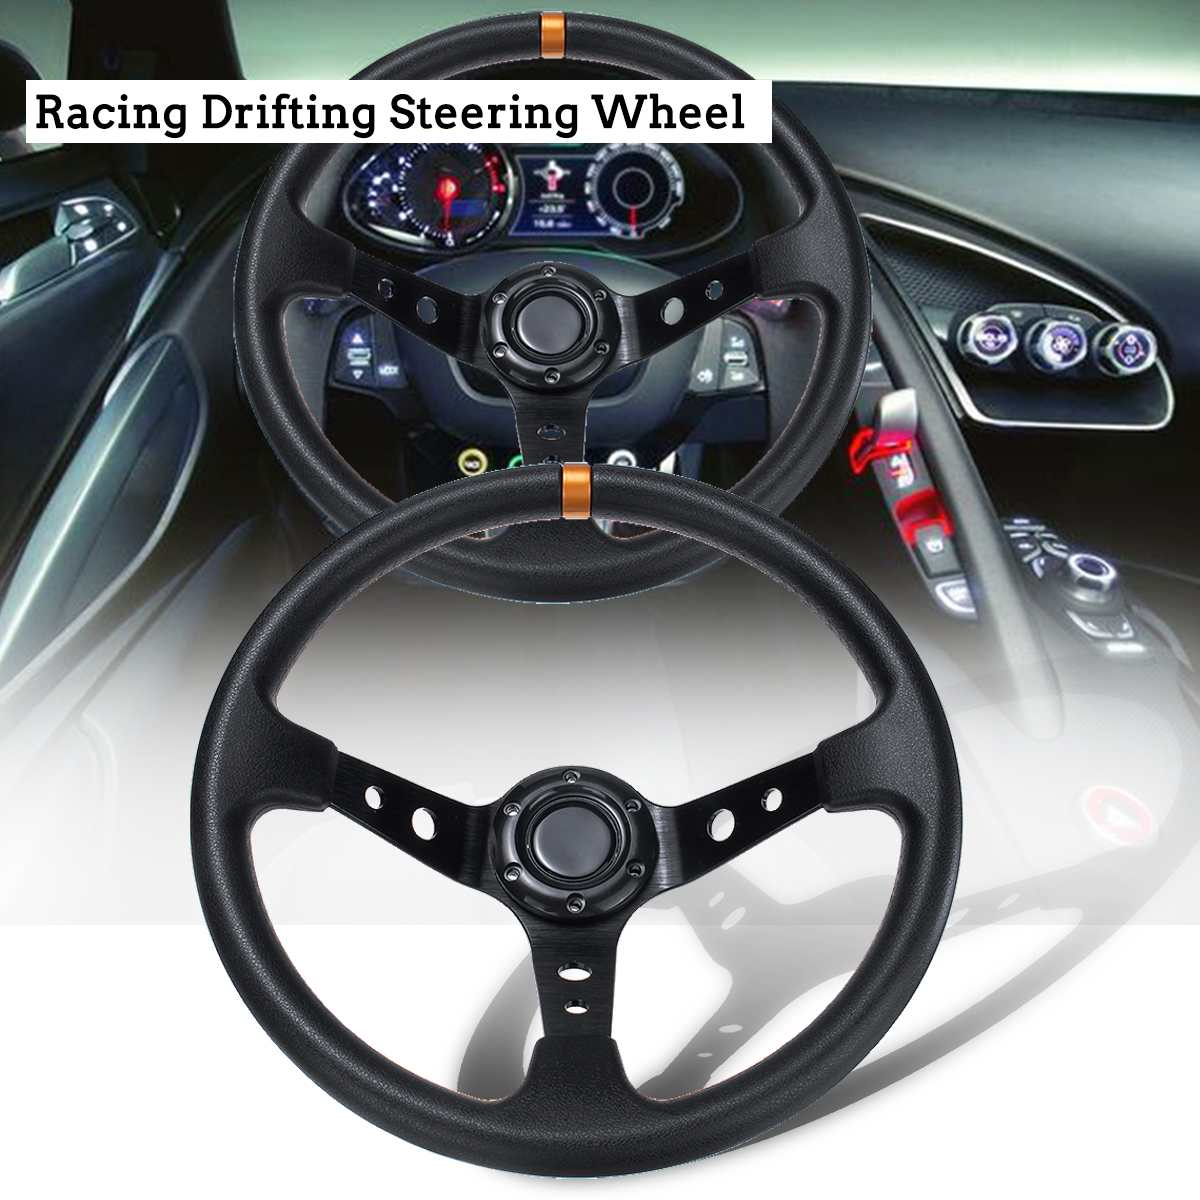 Car Racing Steering Wheel Drift Auto Sports Steering Wheel 14 inch 350mm PU & Aluminum Universal Deep Corn Dish Modified Parts